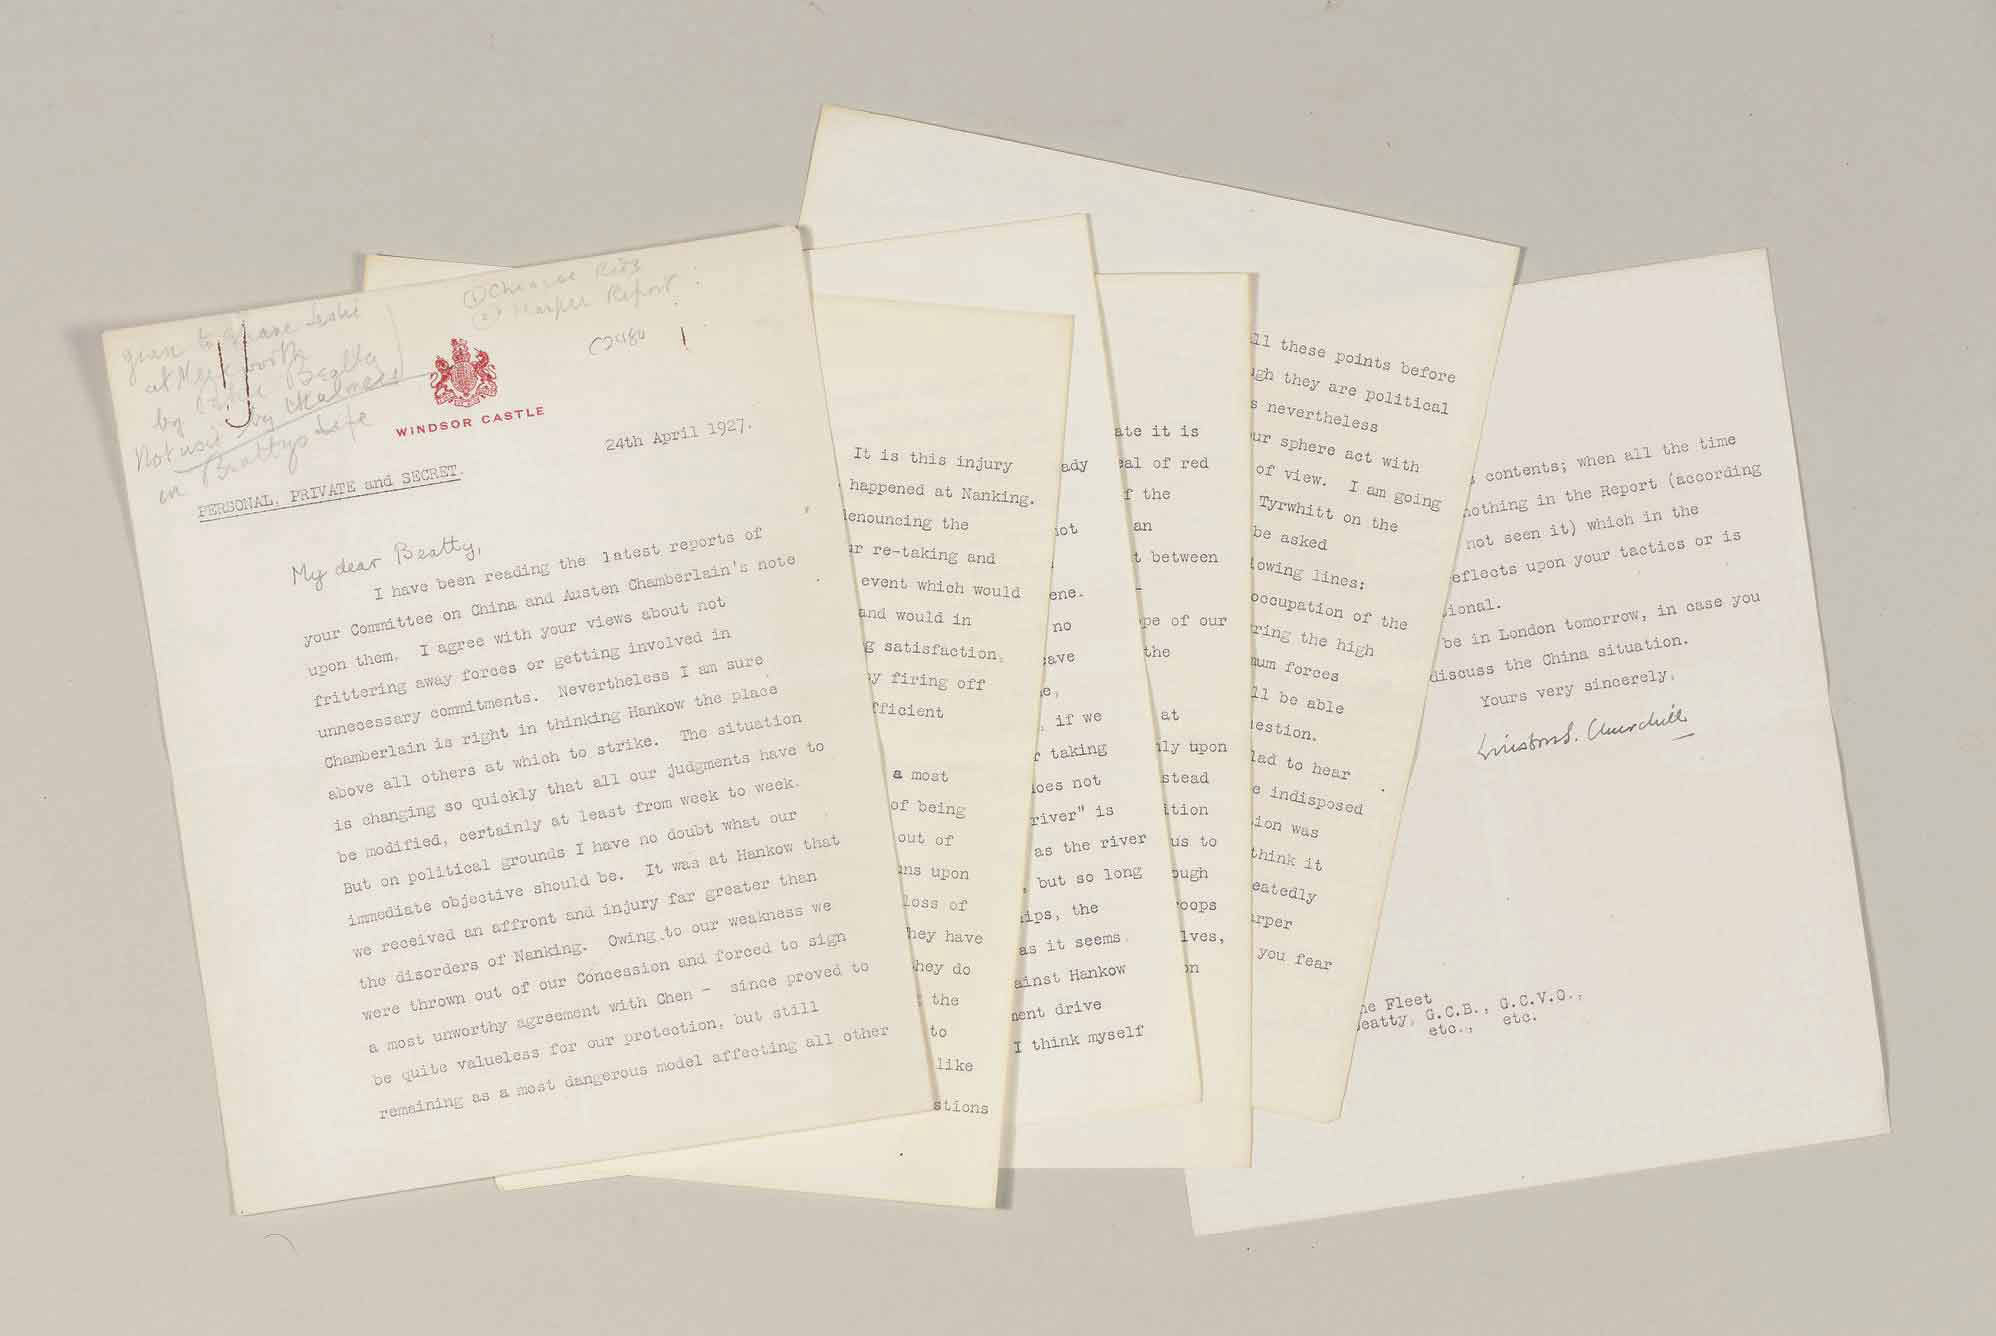 """CHURCHILL, Winston S. Typed letter signed (""""Winston S. Churchill""""), to Admiral Beatty, Windsor Castle, 24 April 1927. 6 pages, 4to, Windsor Castle stationery, paper clip burn and pencil notations in top left corner (by a later, unknown hand). Marked """"Personal, Private and Secret."""""""